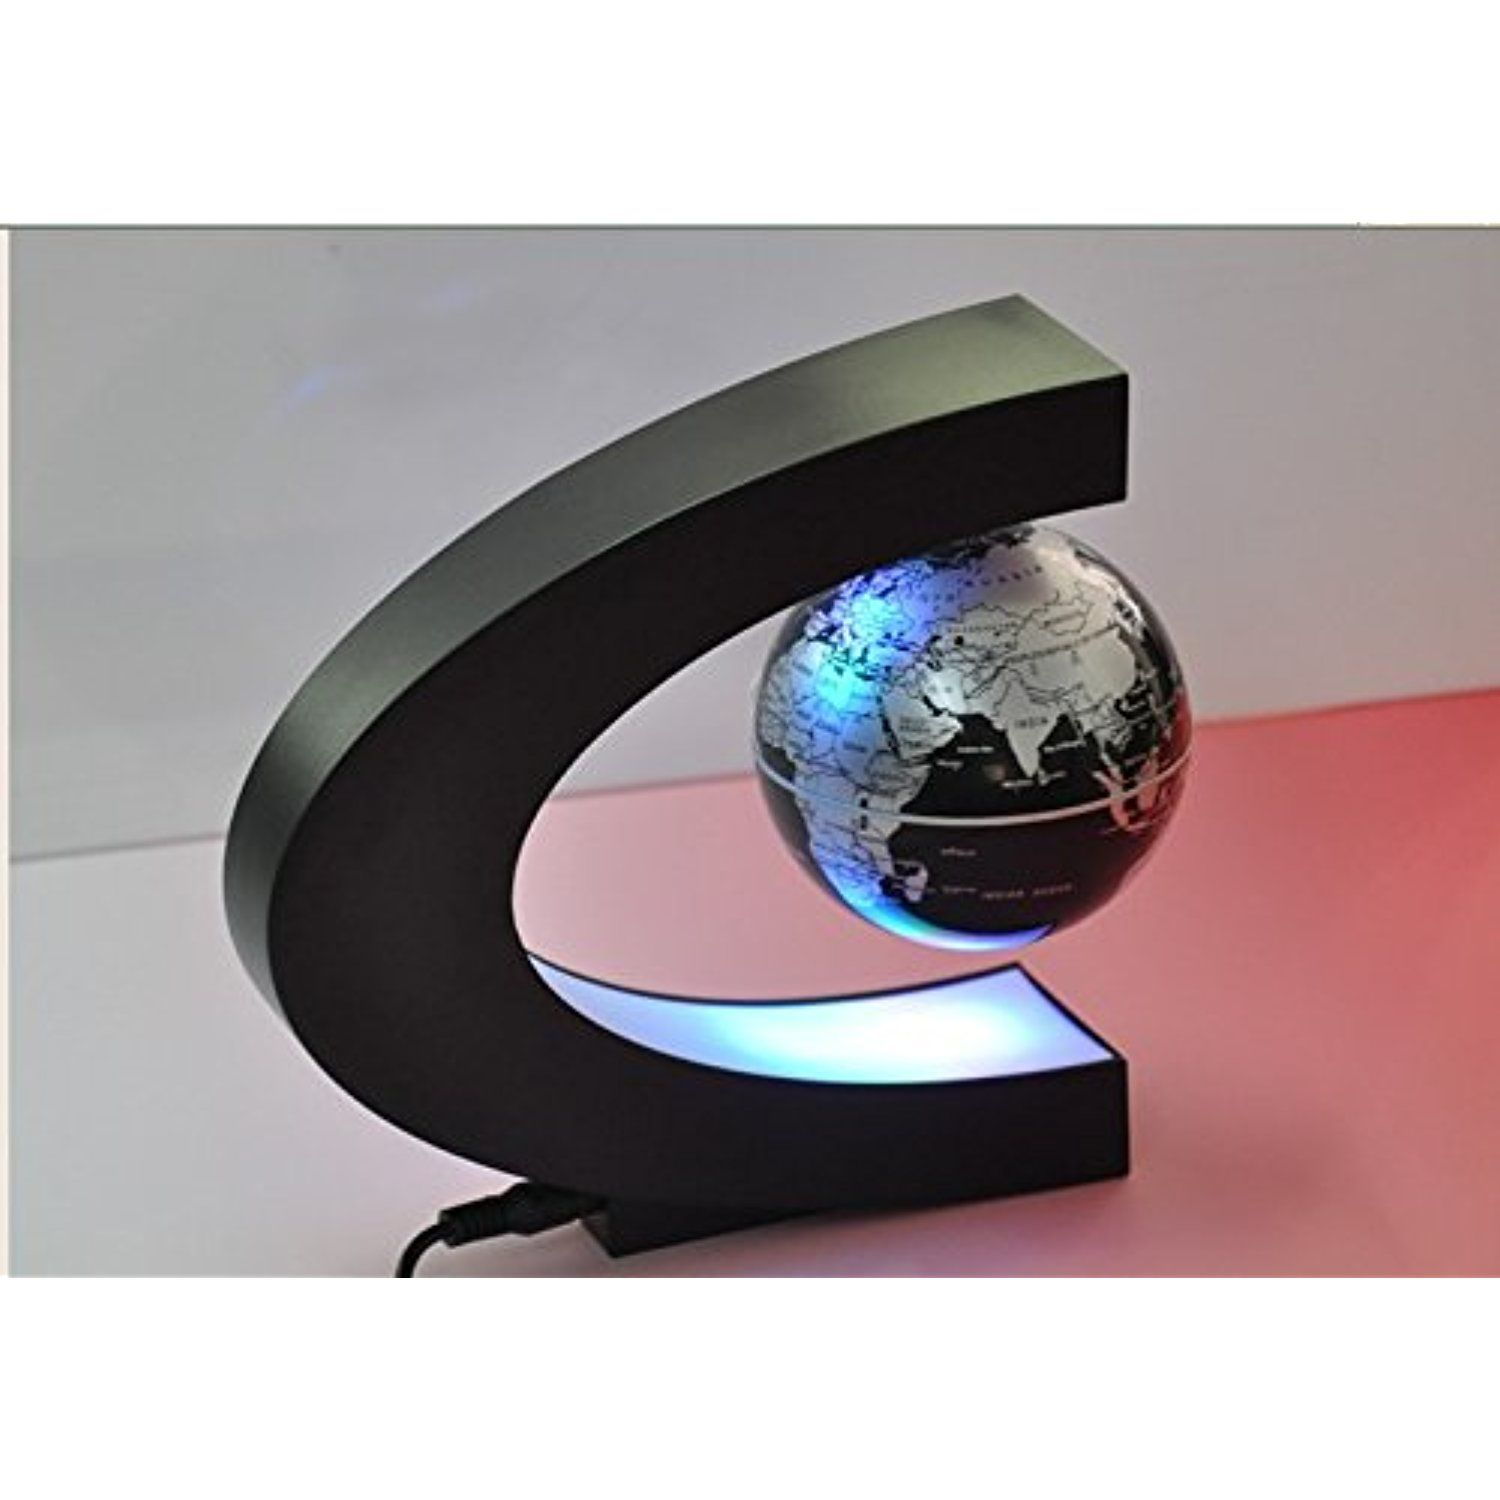 C shape magnetic levitation levitating floating world map globe with c shape magnetic levitation levitating floating world map globe with led lights for desktop decoration gumiabroncs Images